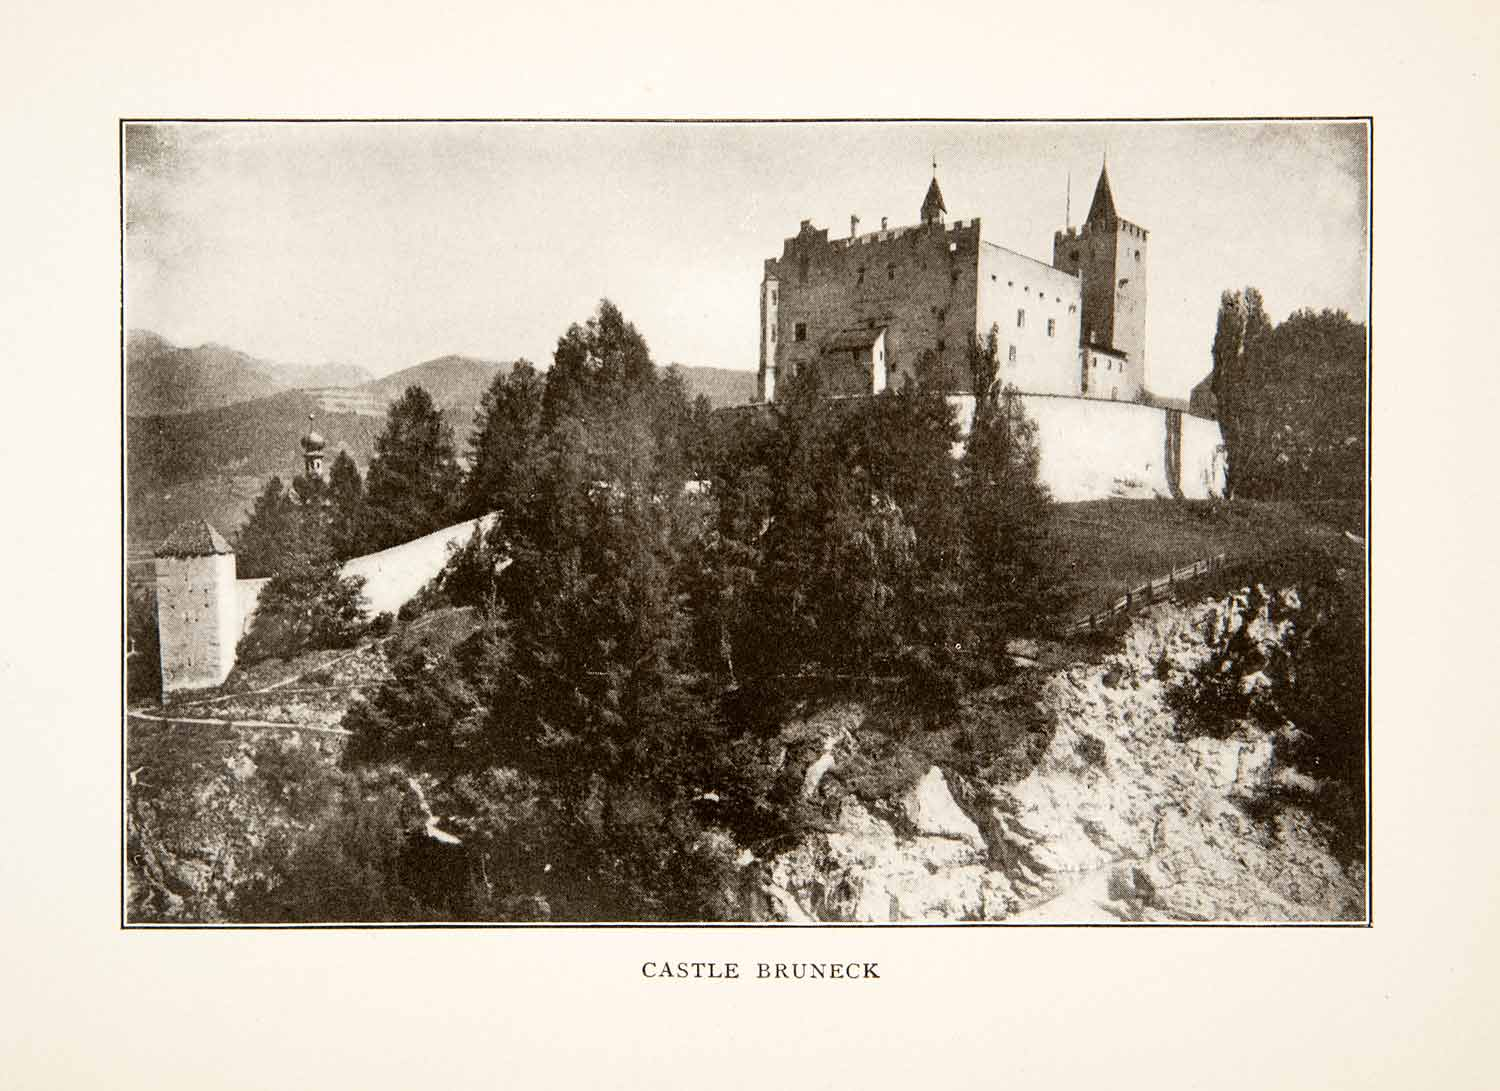 1905 Print Castle Bruneck South Tyrol Italy Castle Fortress Landscape XGXB8